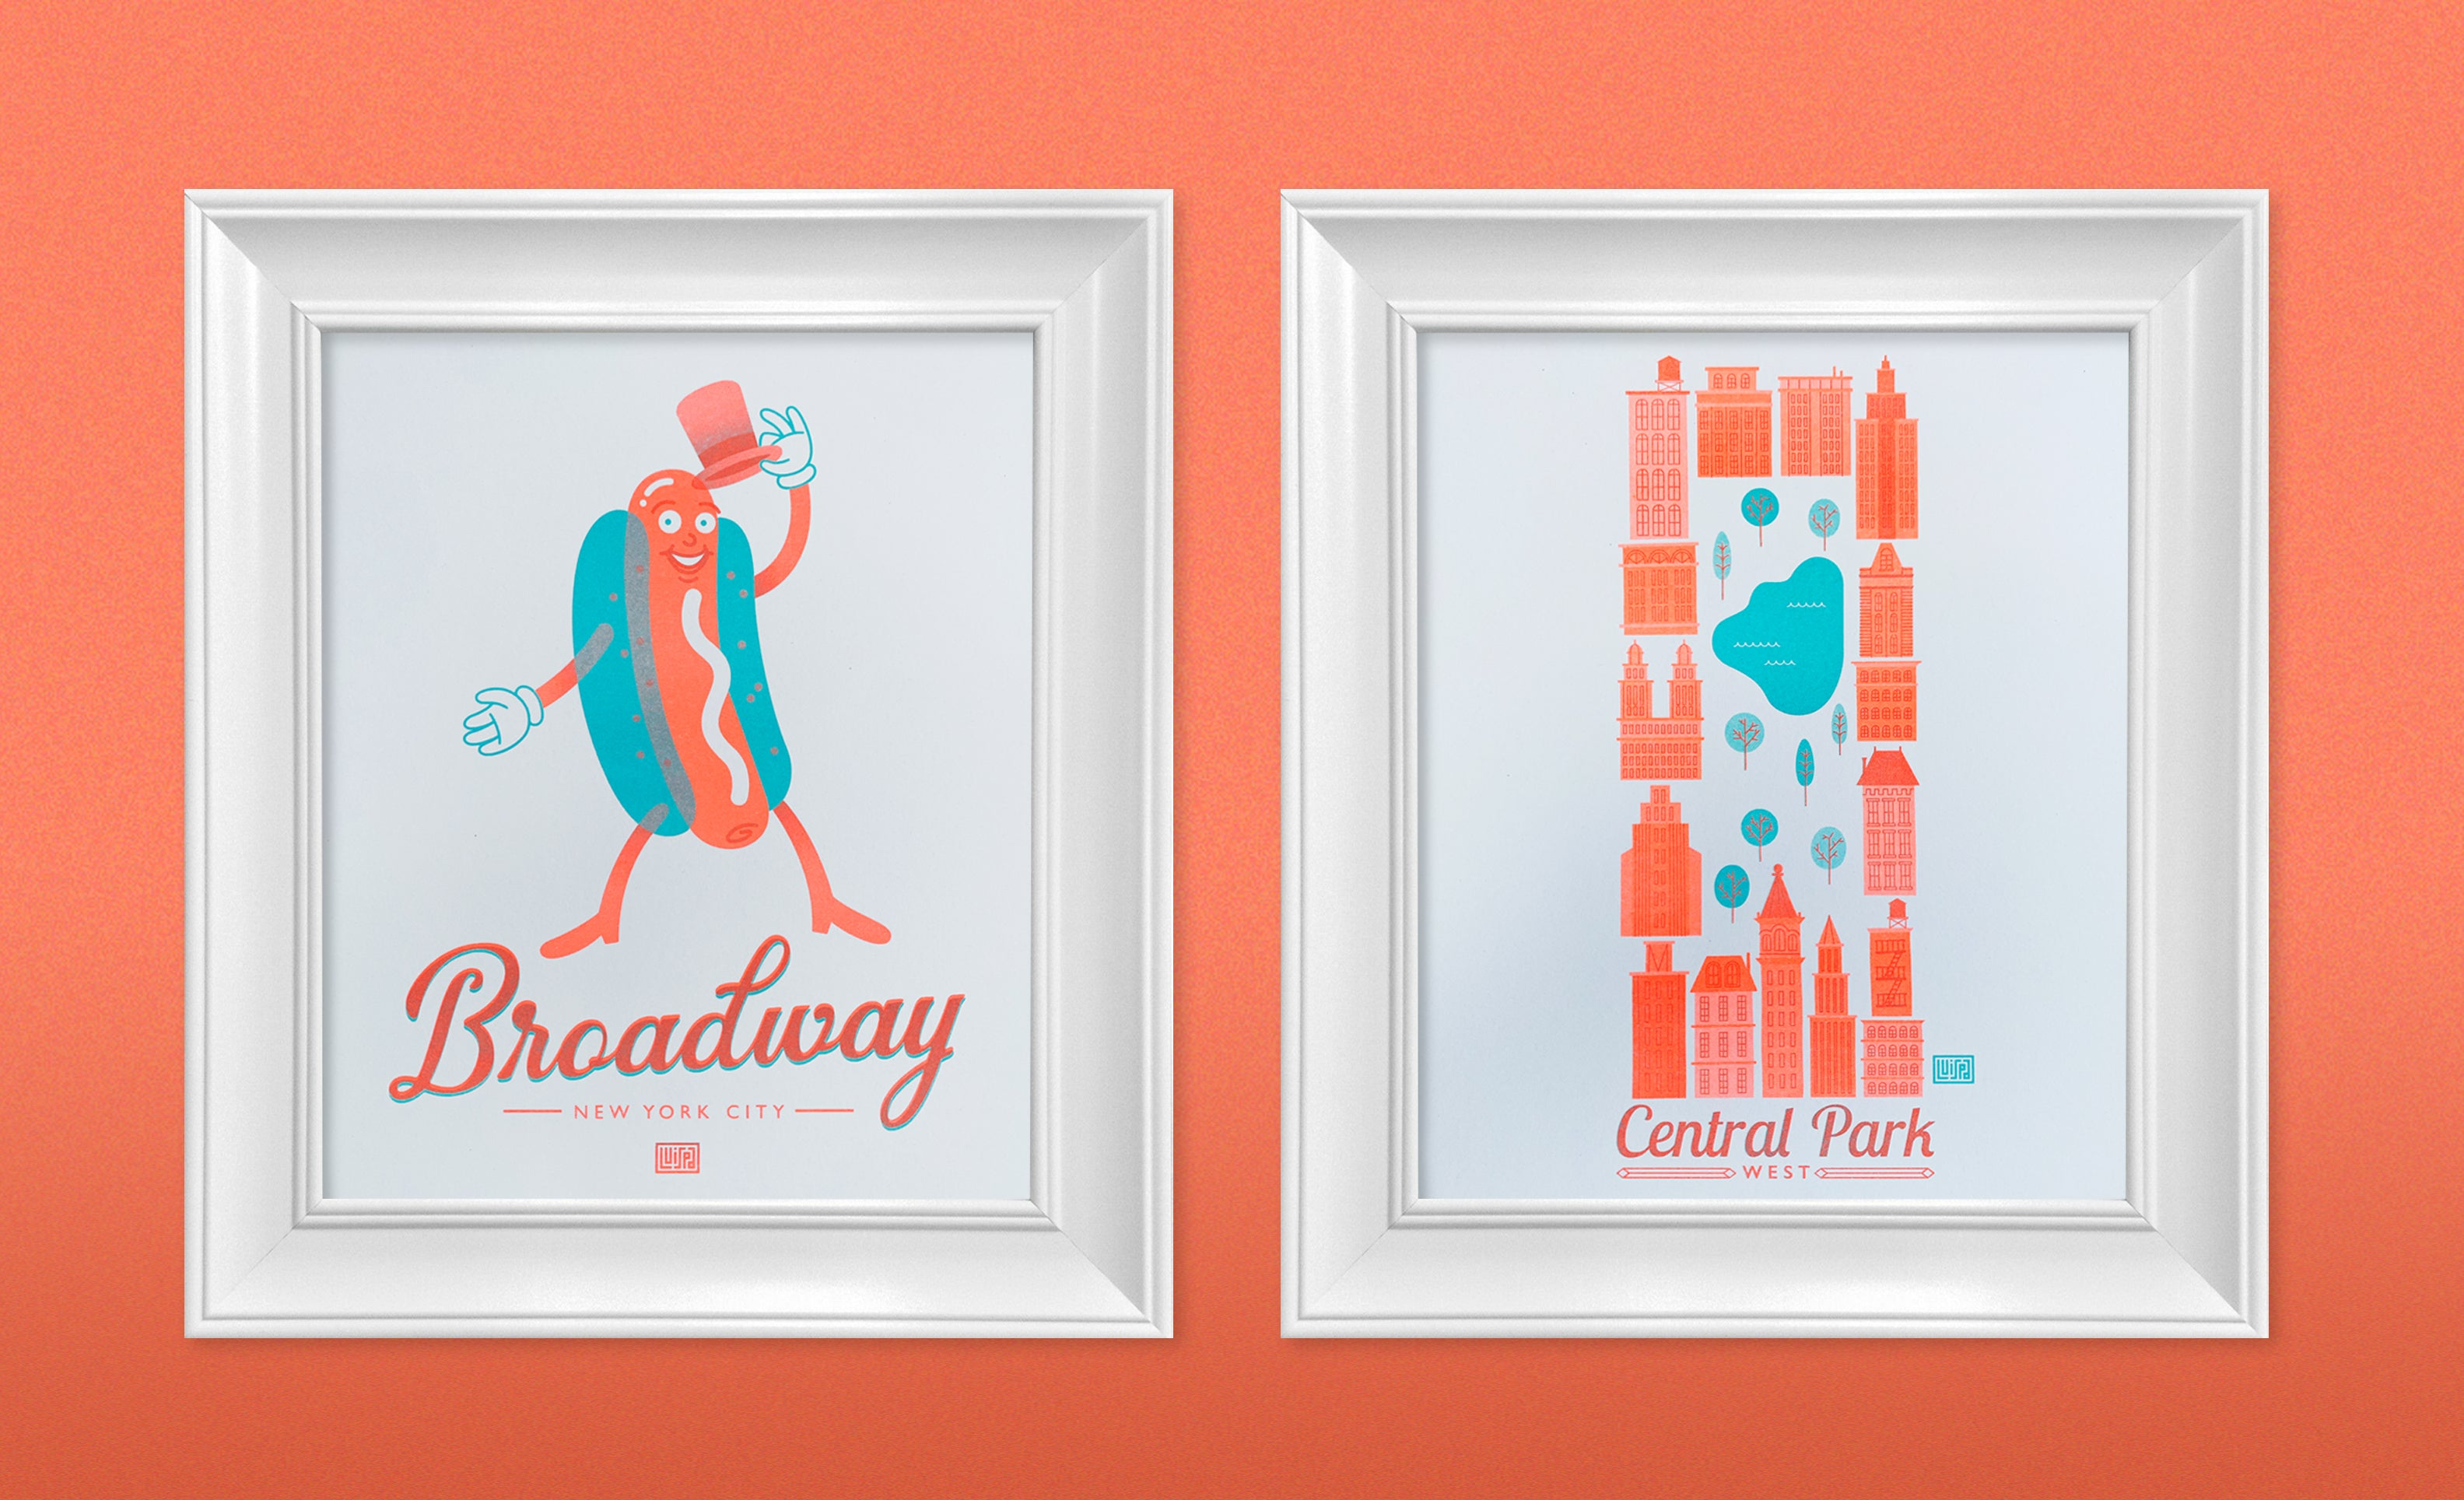 Set of Two Risograph Prints for $40 (Broadway and Central Park)